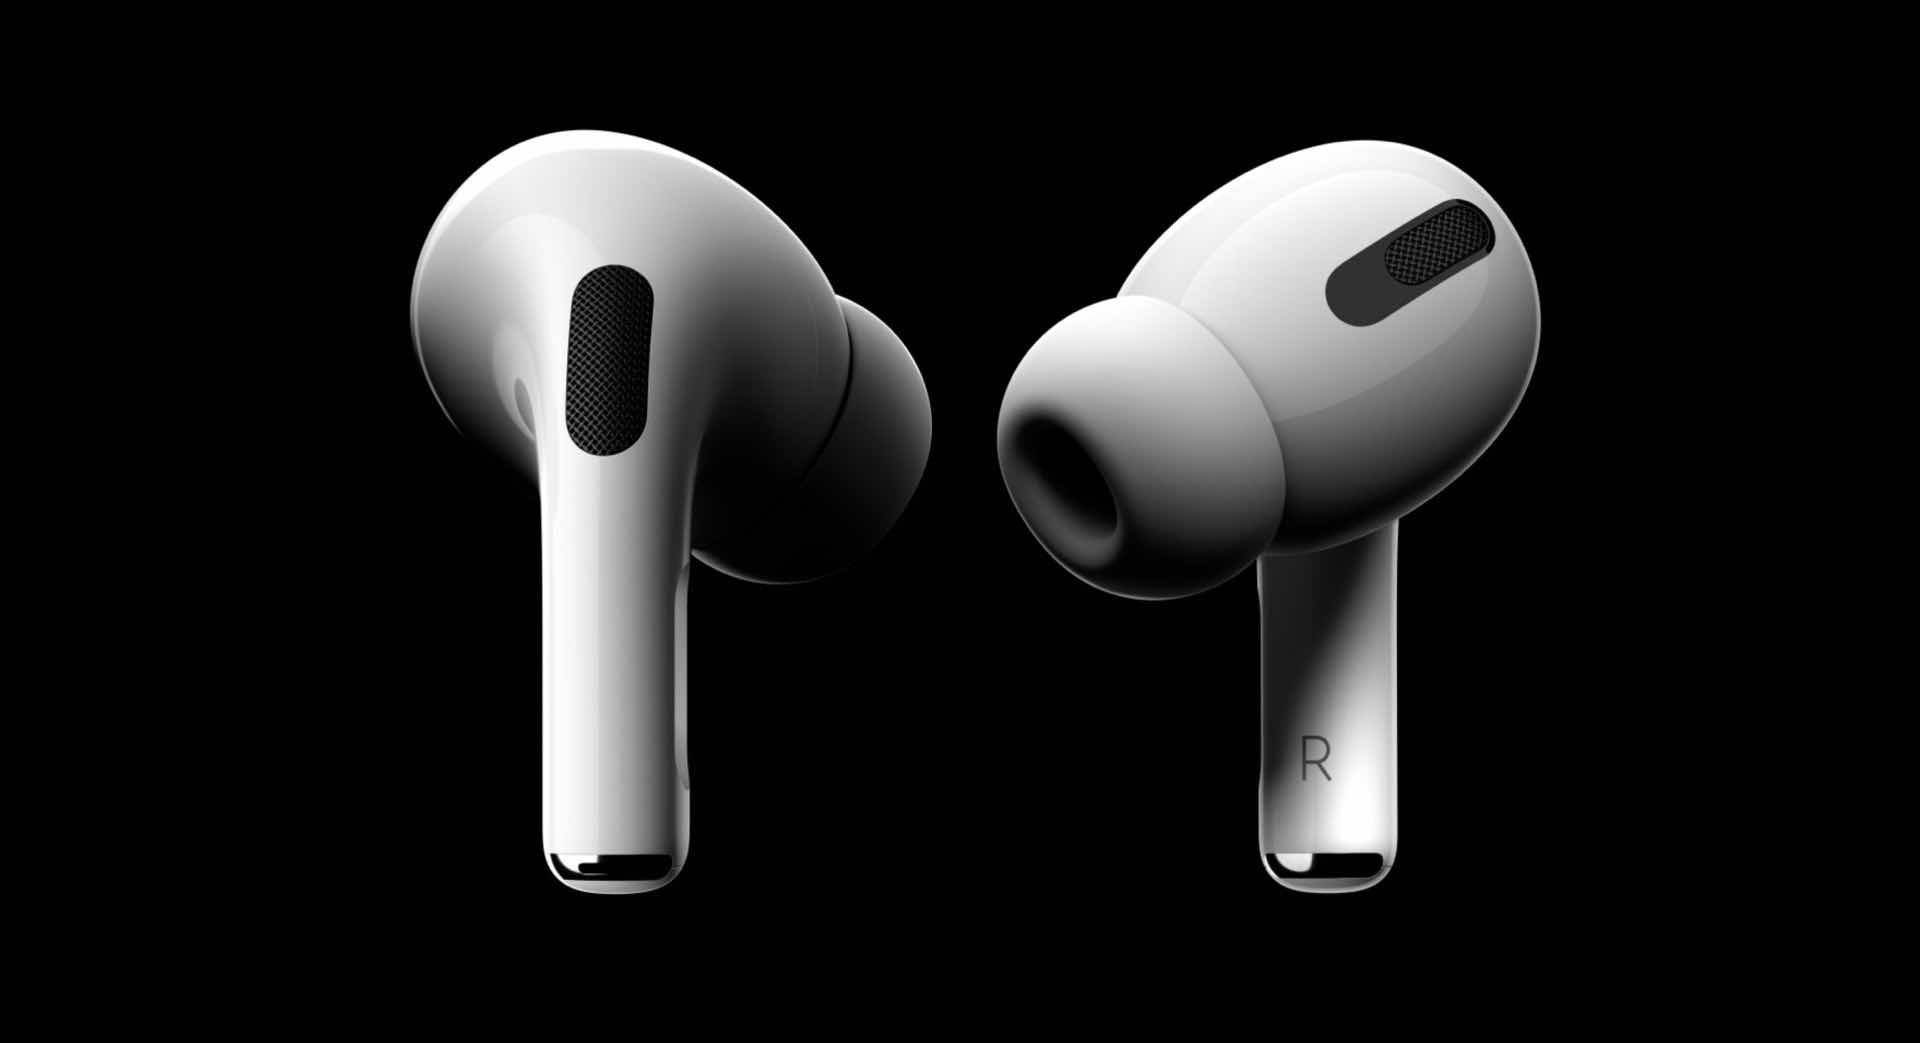 apple-airpods-pro-earbuds